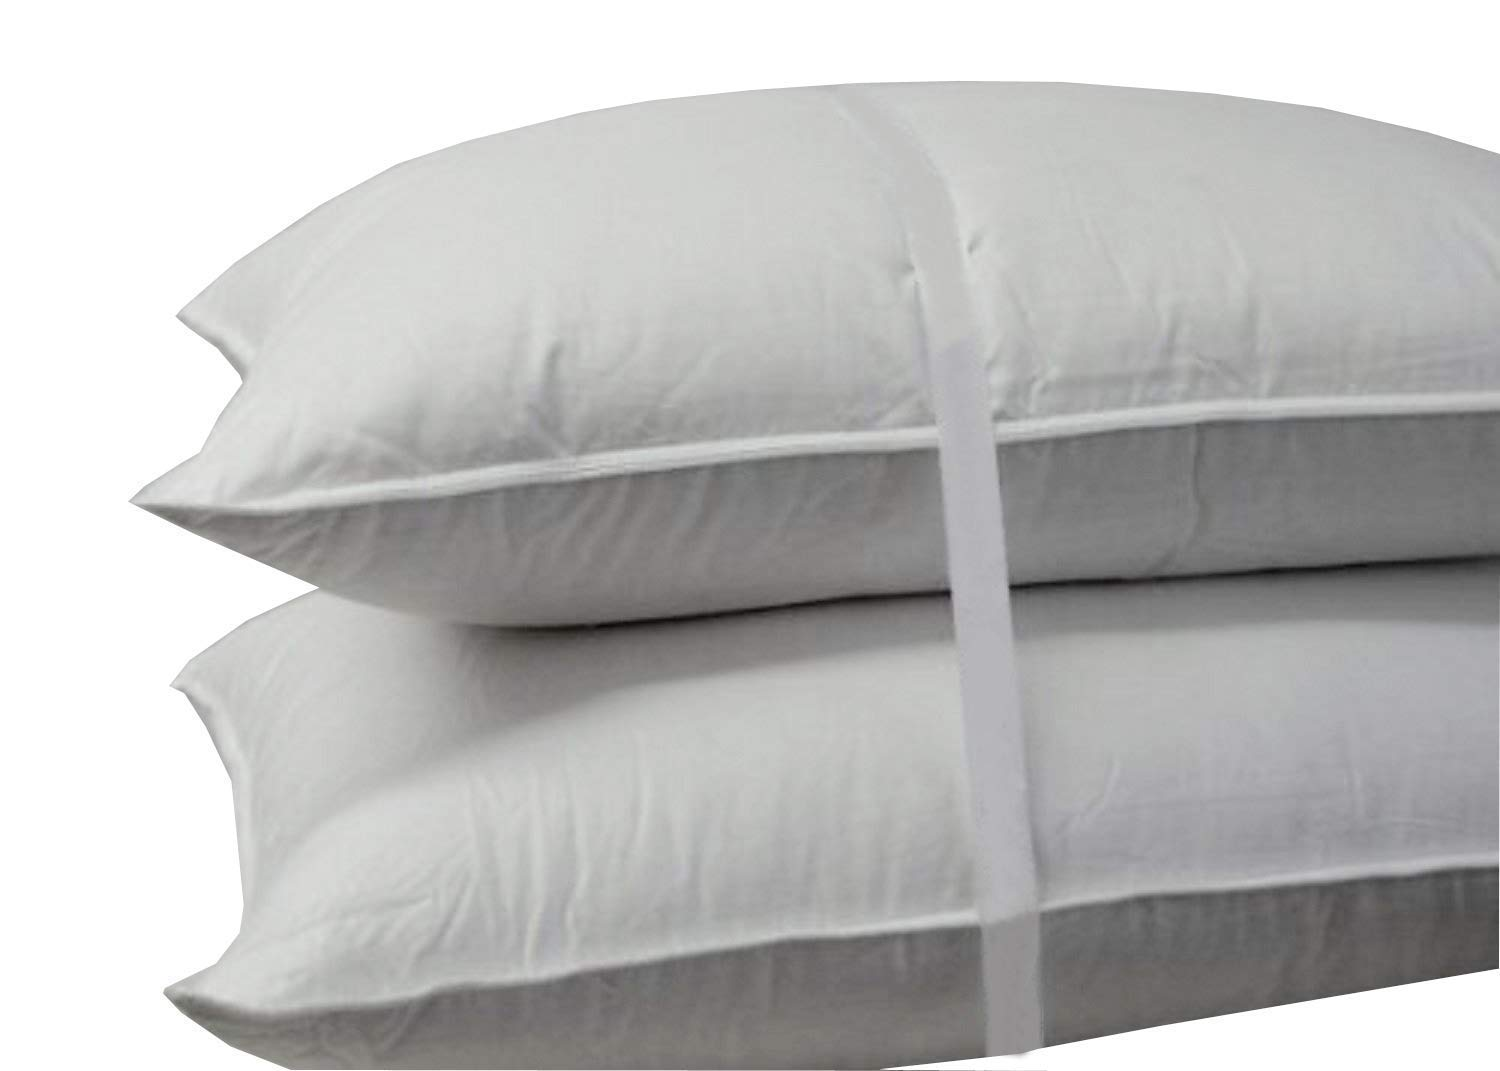 Royal Hotel's Down Pillow - 500 Thread Count Cotton , Standard / Queen Size, Firm Down Pillows, Set of 2